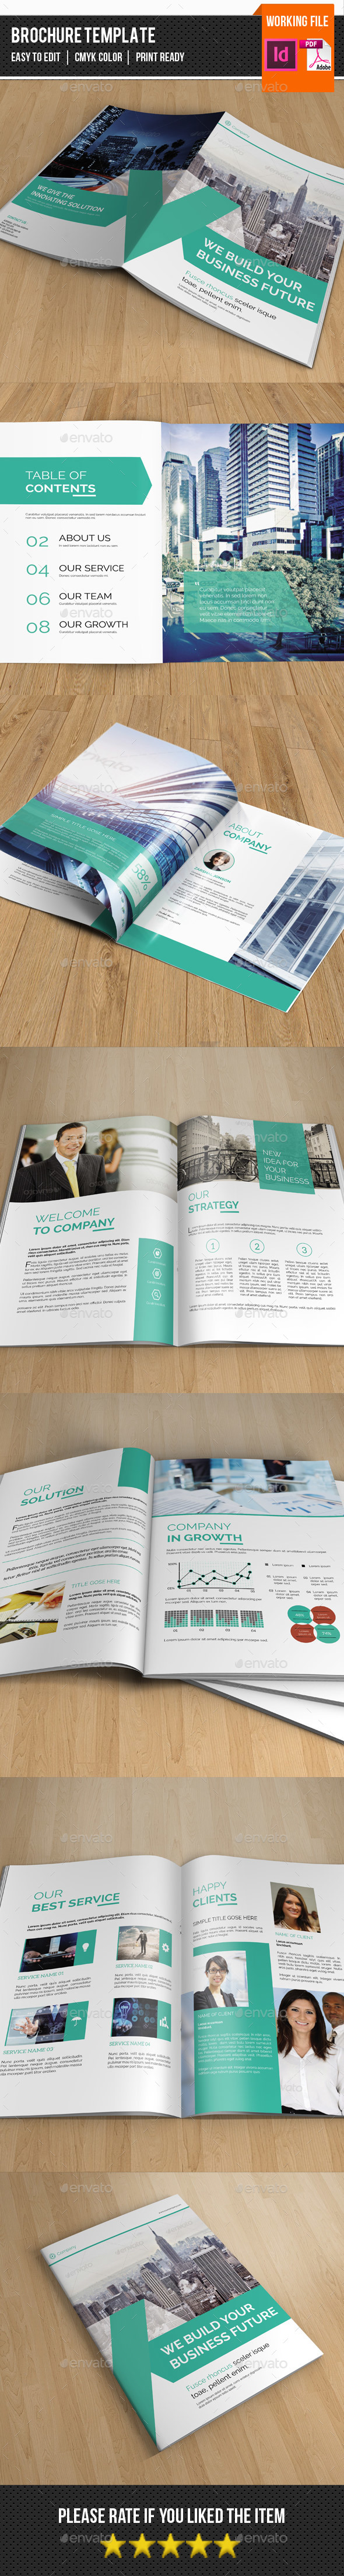 Corporate Brochure Template-V309